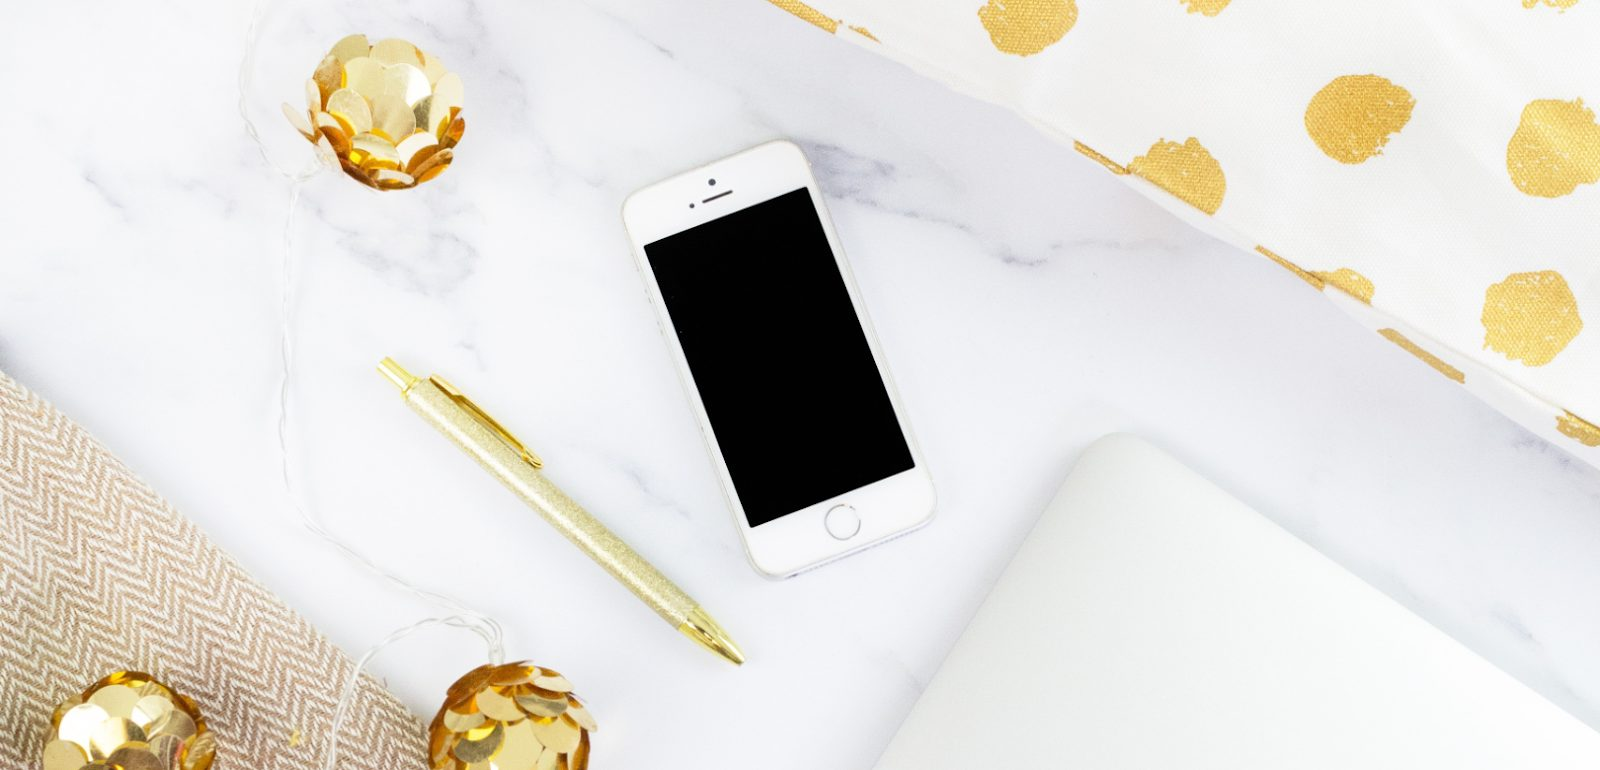 iphone and gold decors